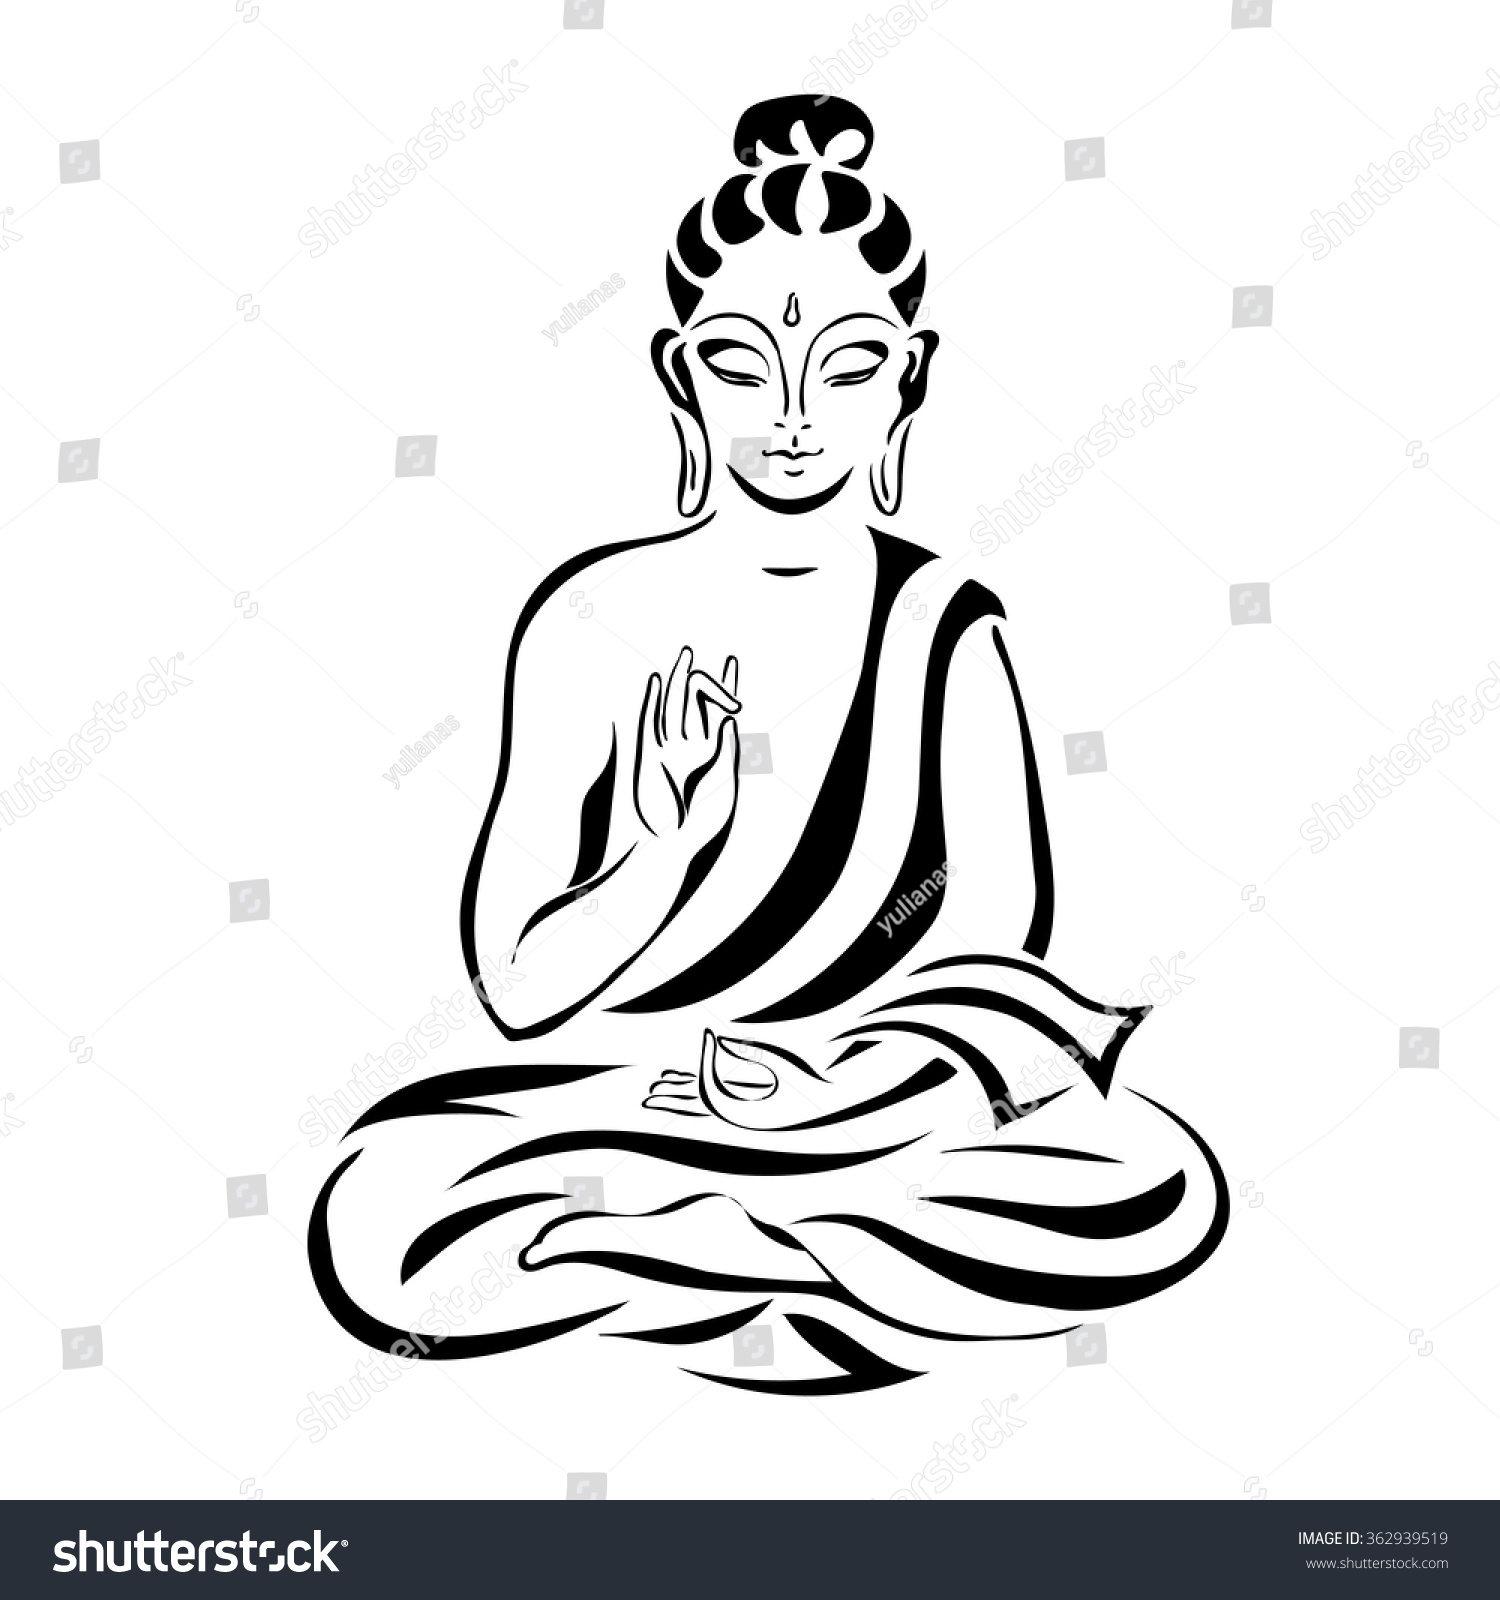 buddha lotus position black outlines isolated stock vector 362939519 shutterstock. Black Bedroom Furniture Sets. Home Design Ideas